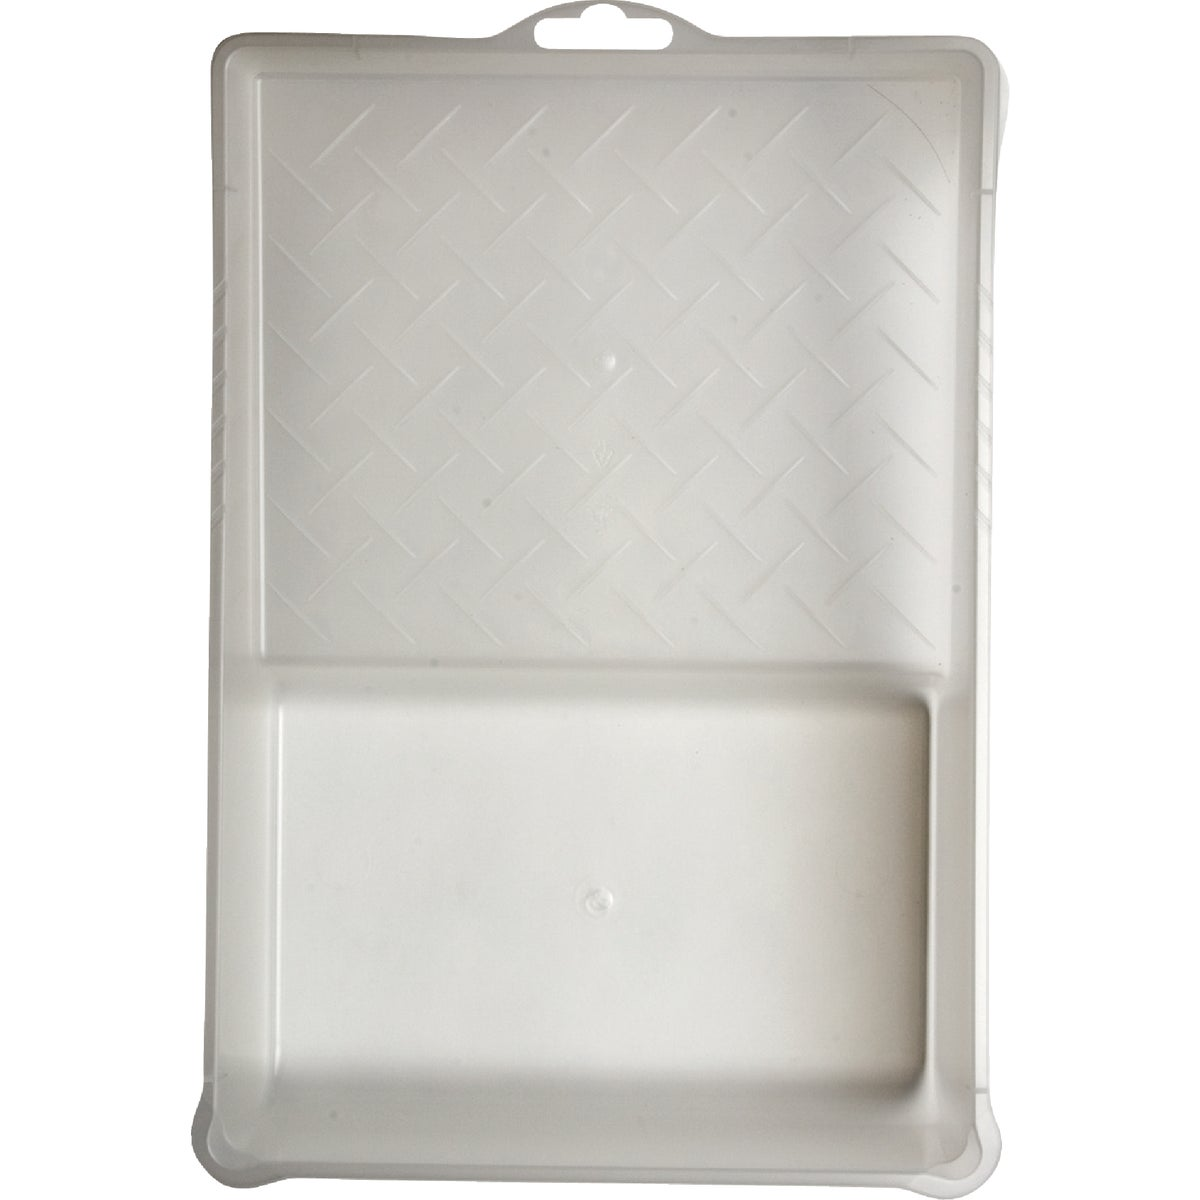 8X12 ROLLER TRAY - 73510 by Whizz Roller System